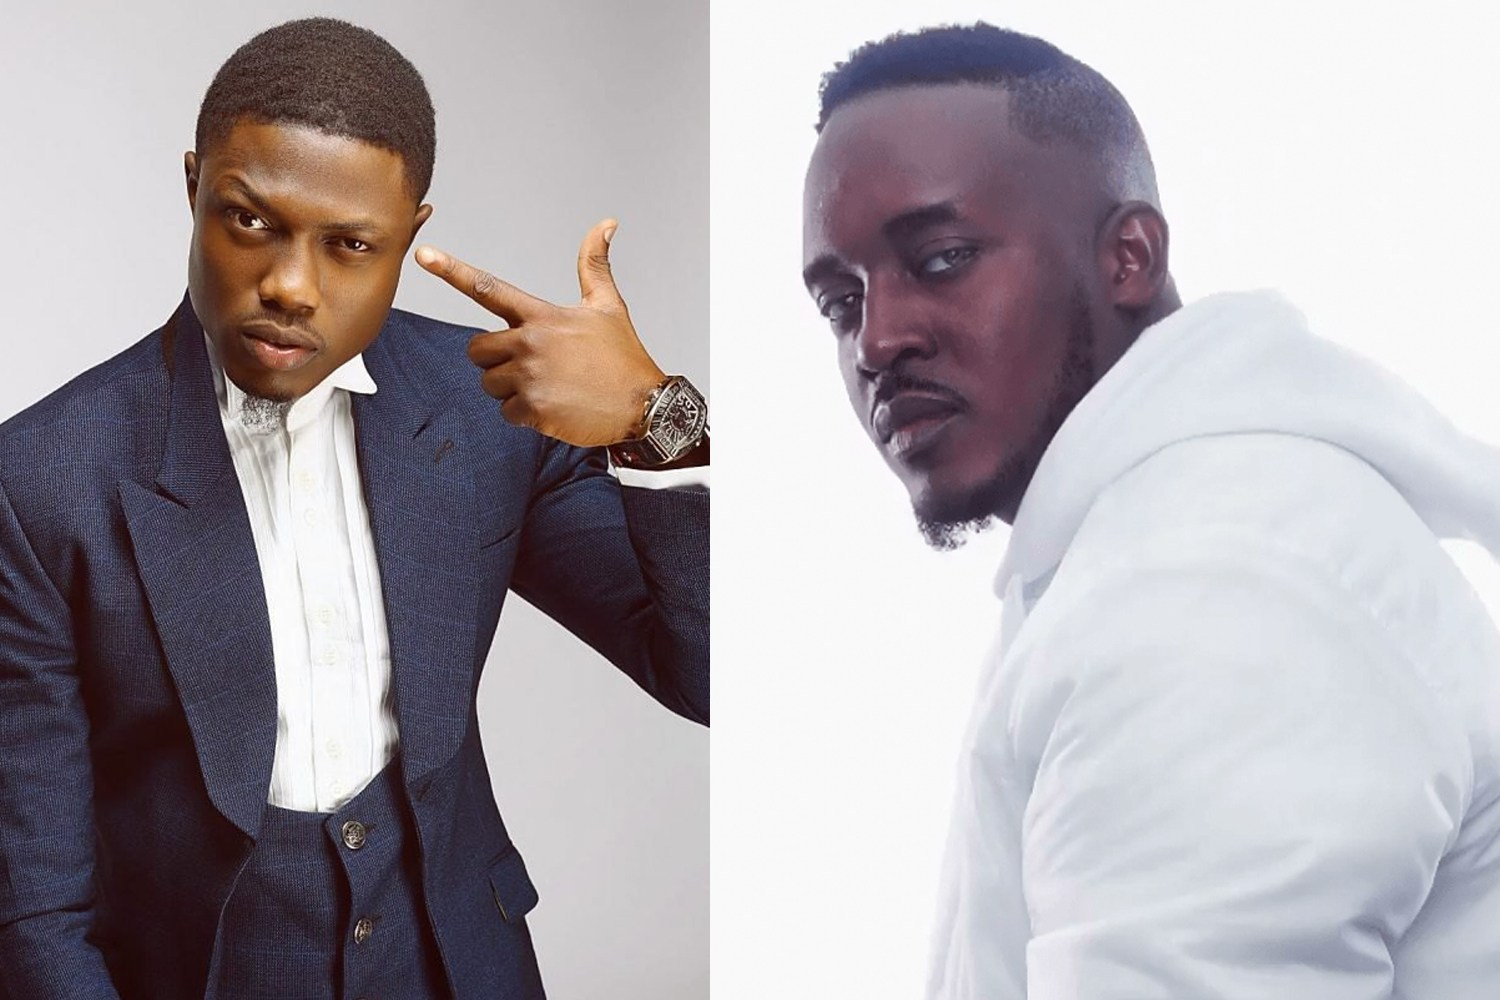 World Teachers Day: Did MI Abaga school Vector with his diss track?